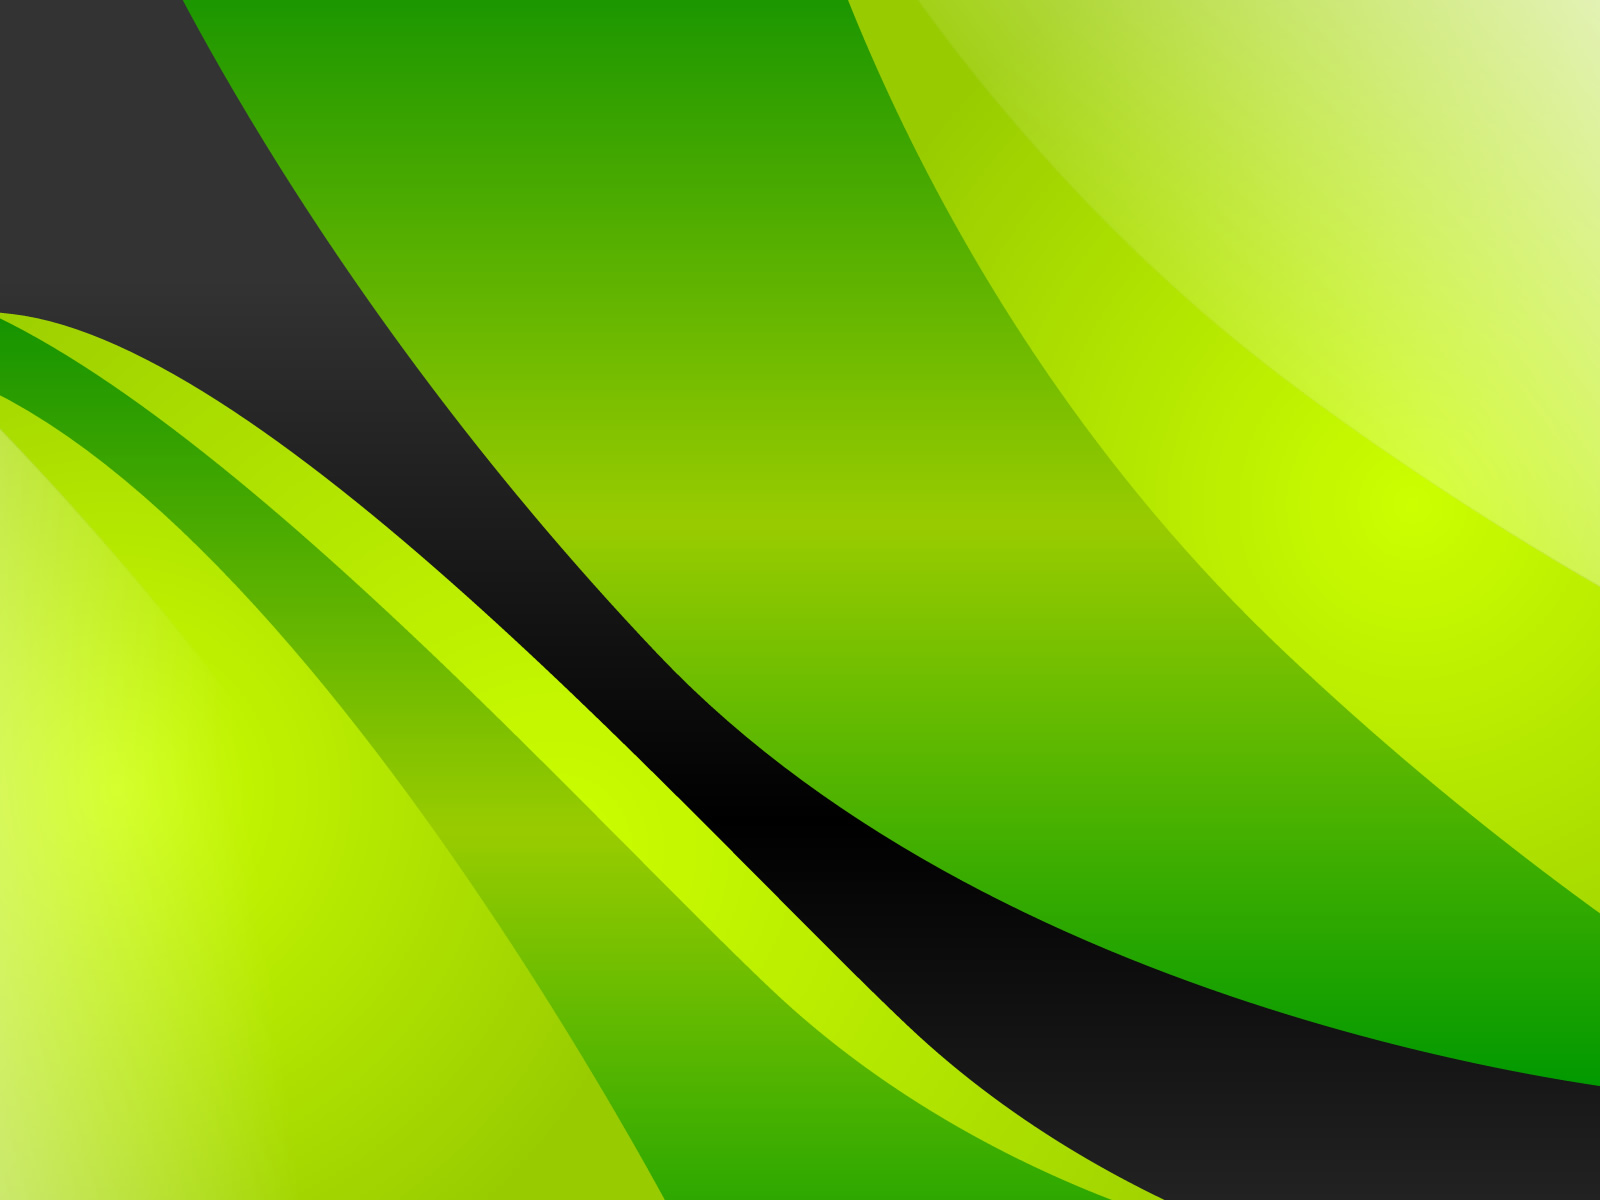 Green And Black Abstract Wallpaper 16 Desktop Background ...